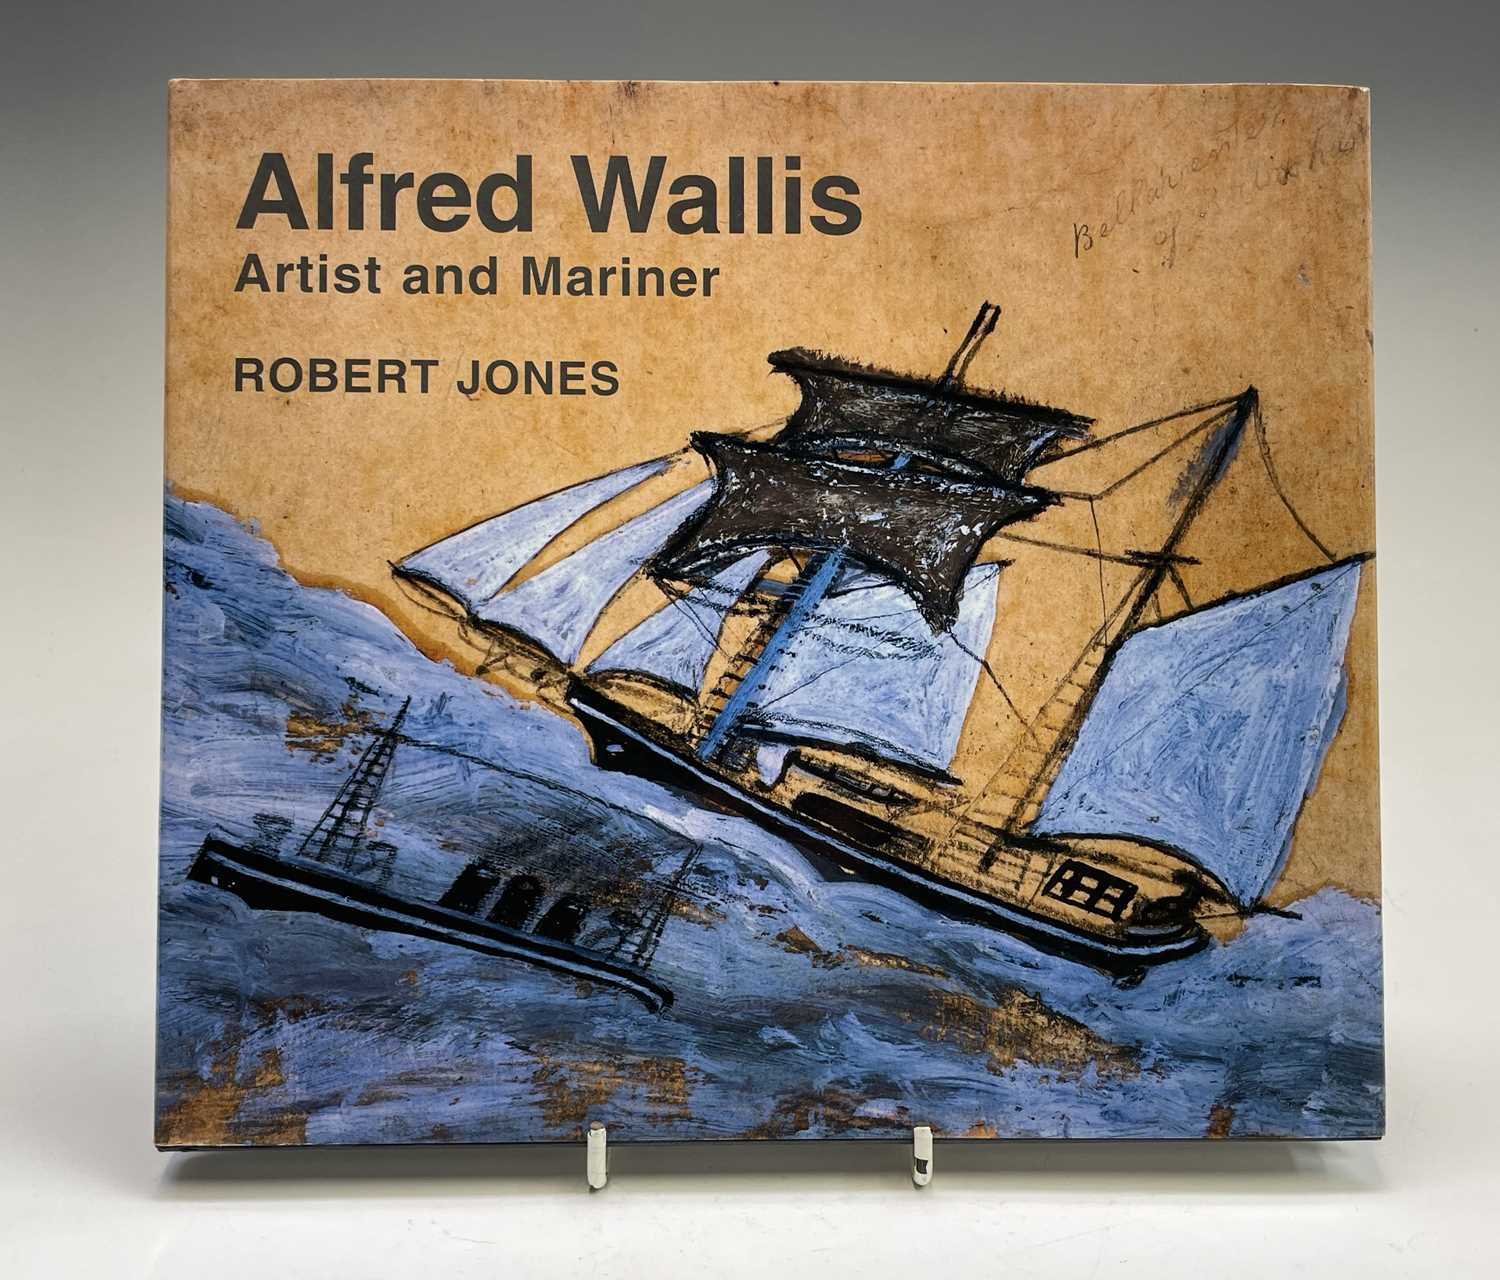 'Alfred Wallis - Artist and Mariner' the book by Robert Jones, signed by the author